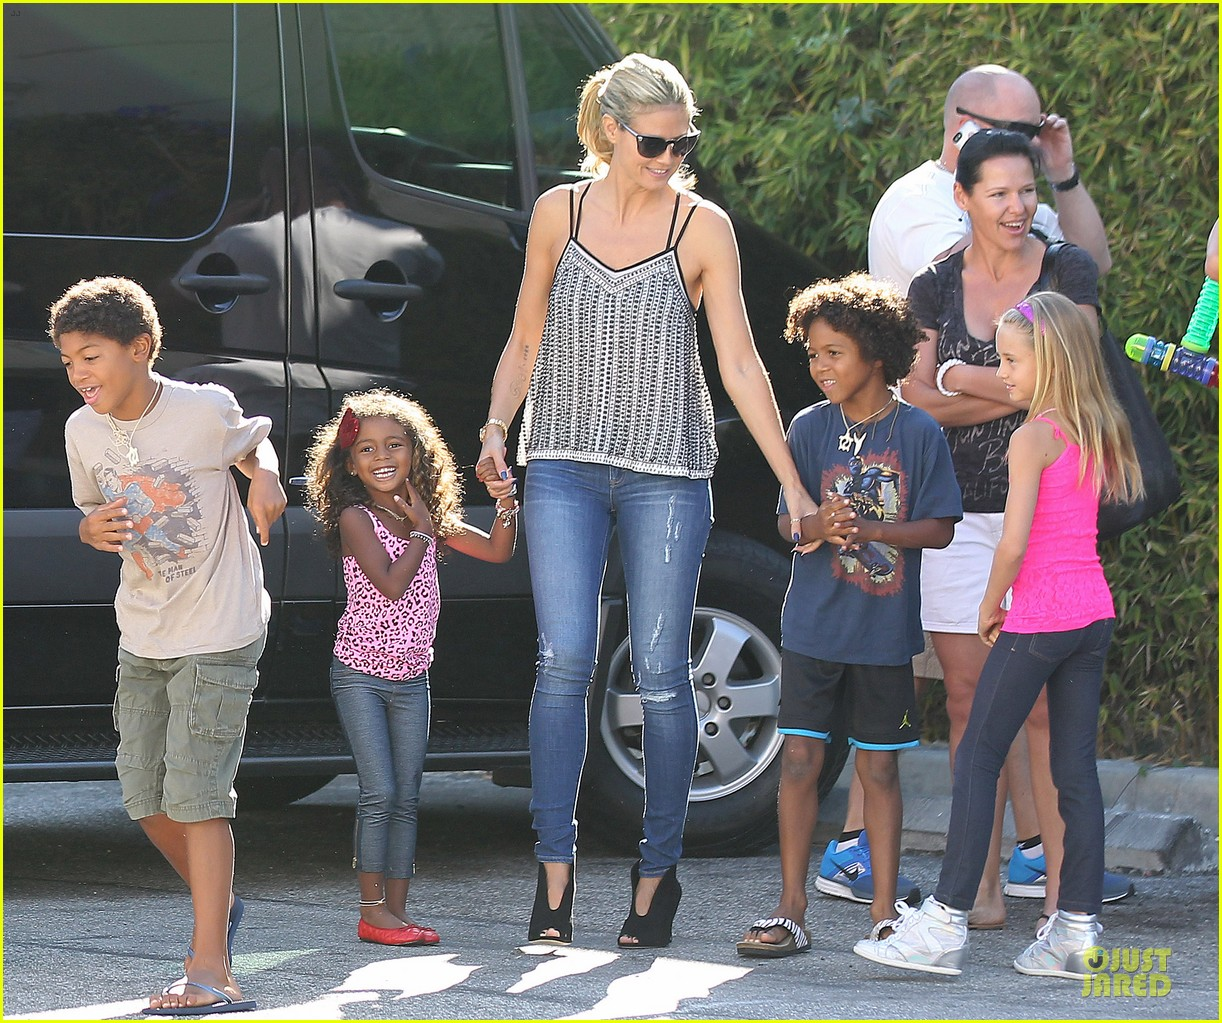 heidi-klum-martin-kirsten-beach-bike-ride-with-kids-10